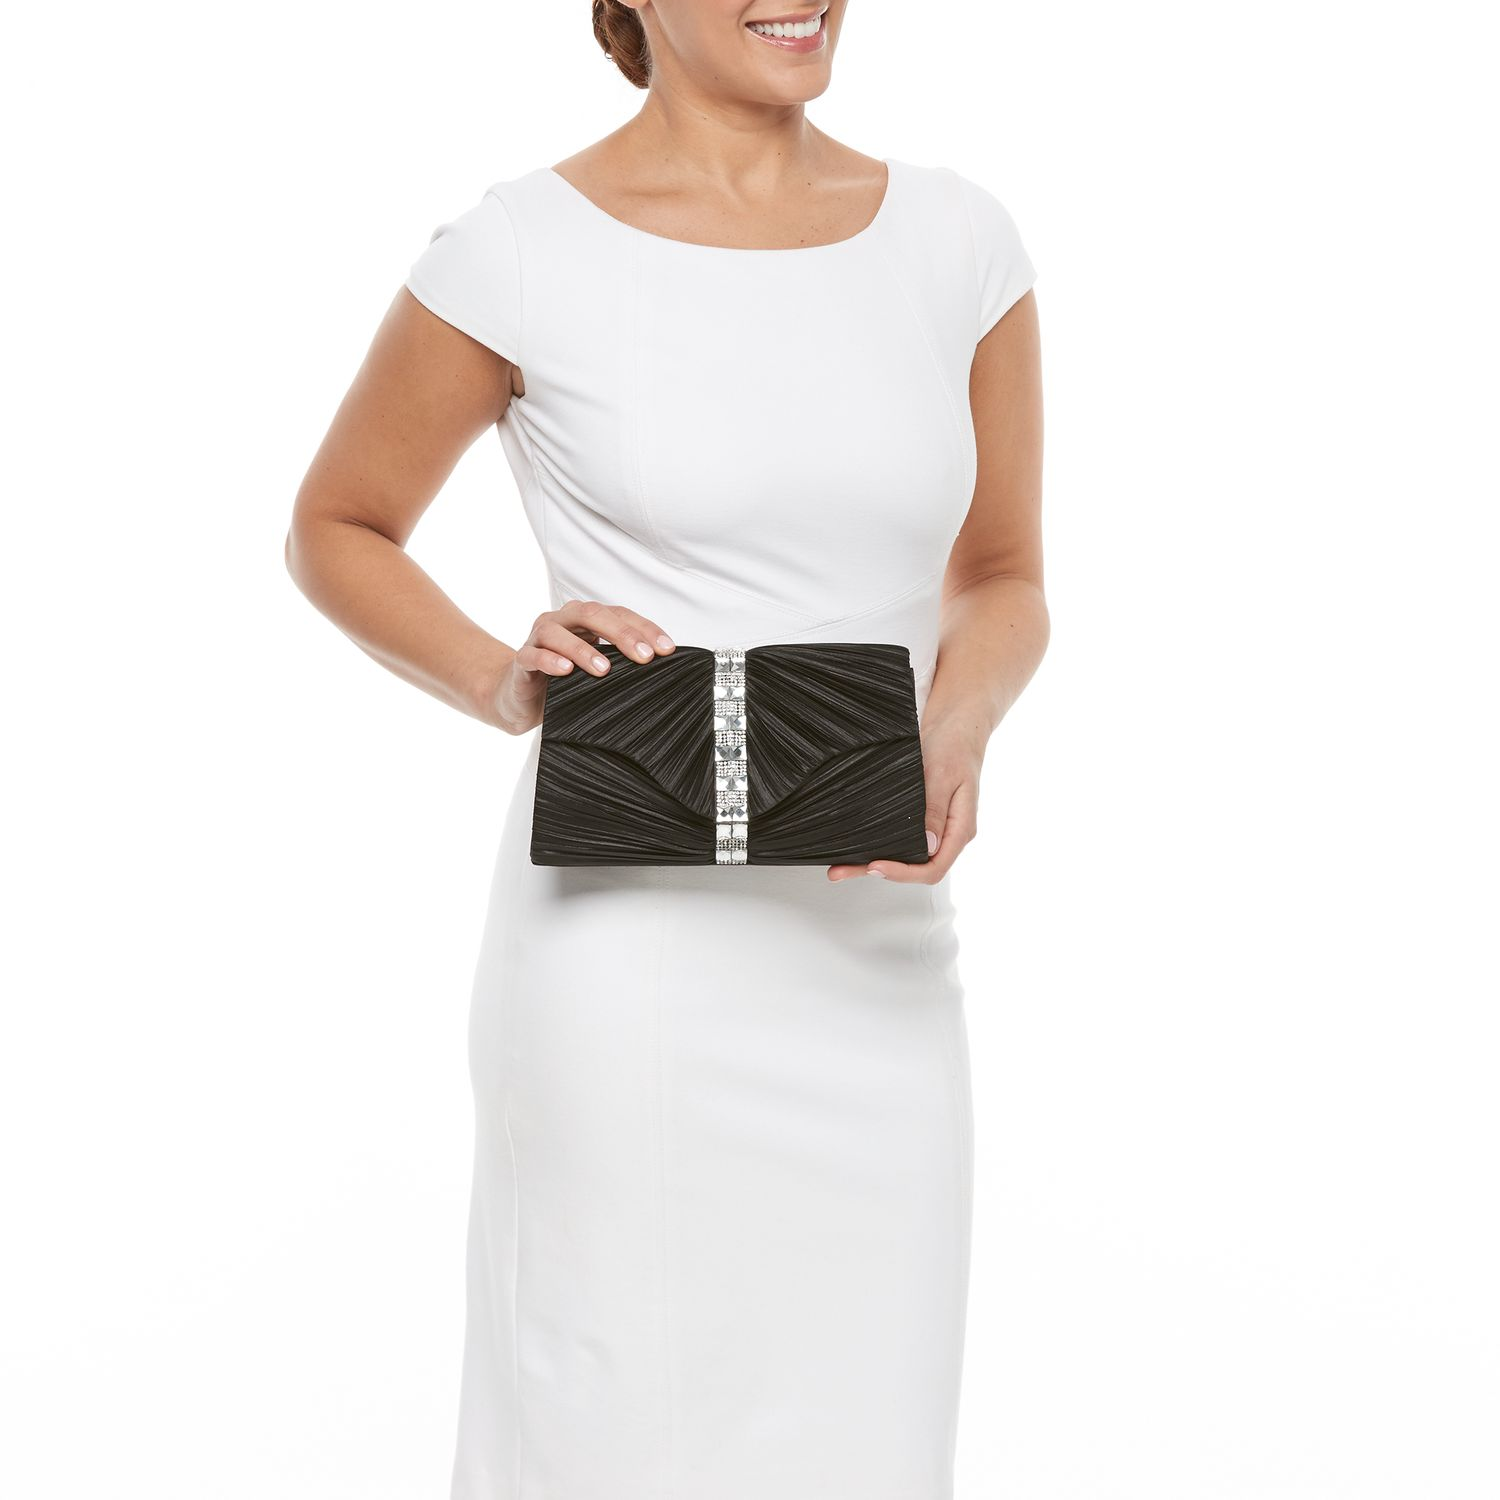 45ed170a6 Clutches | Kohl's